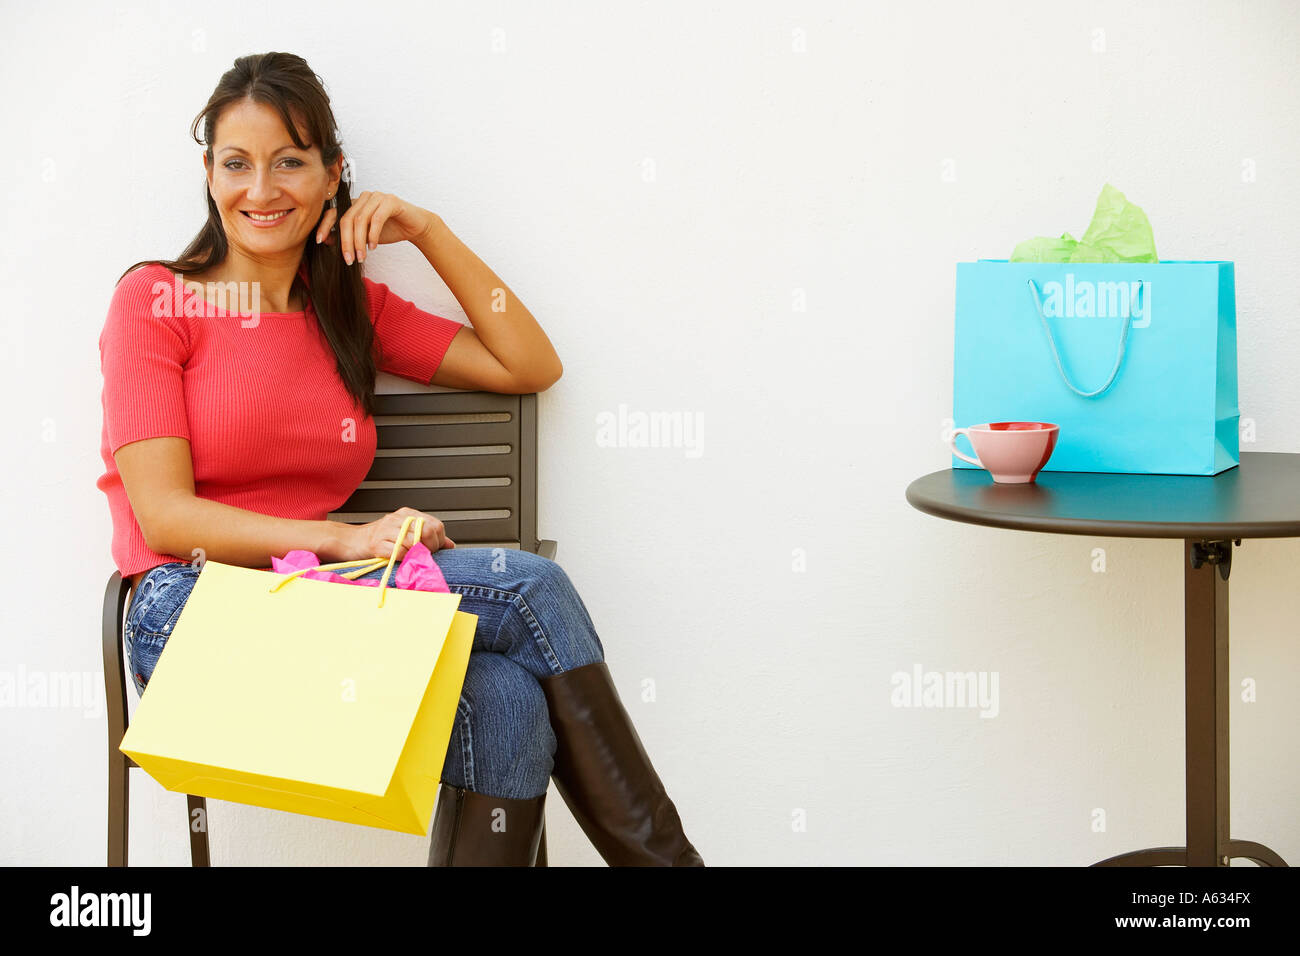 Portrait of a mid adult woman sitting in an armchair and smiling - Stock Image